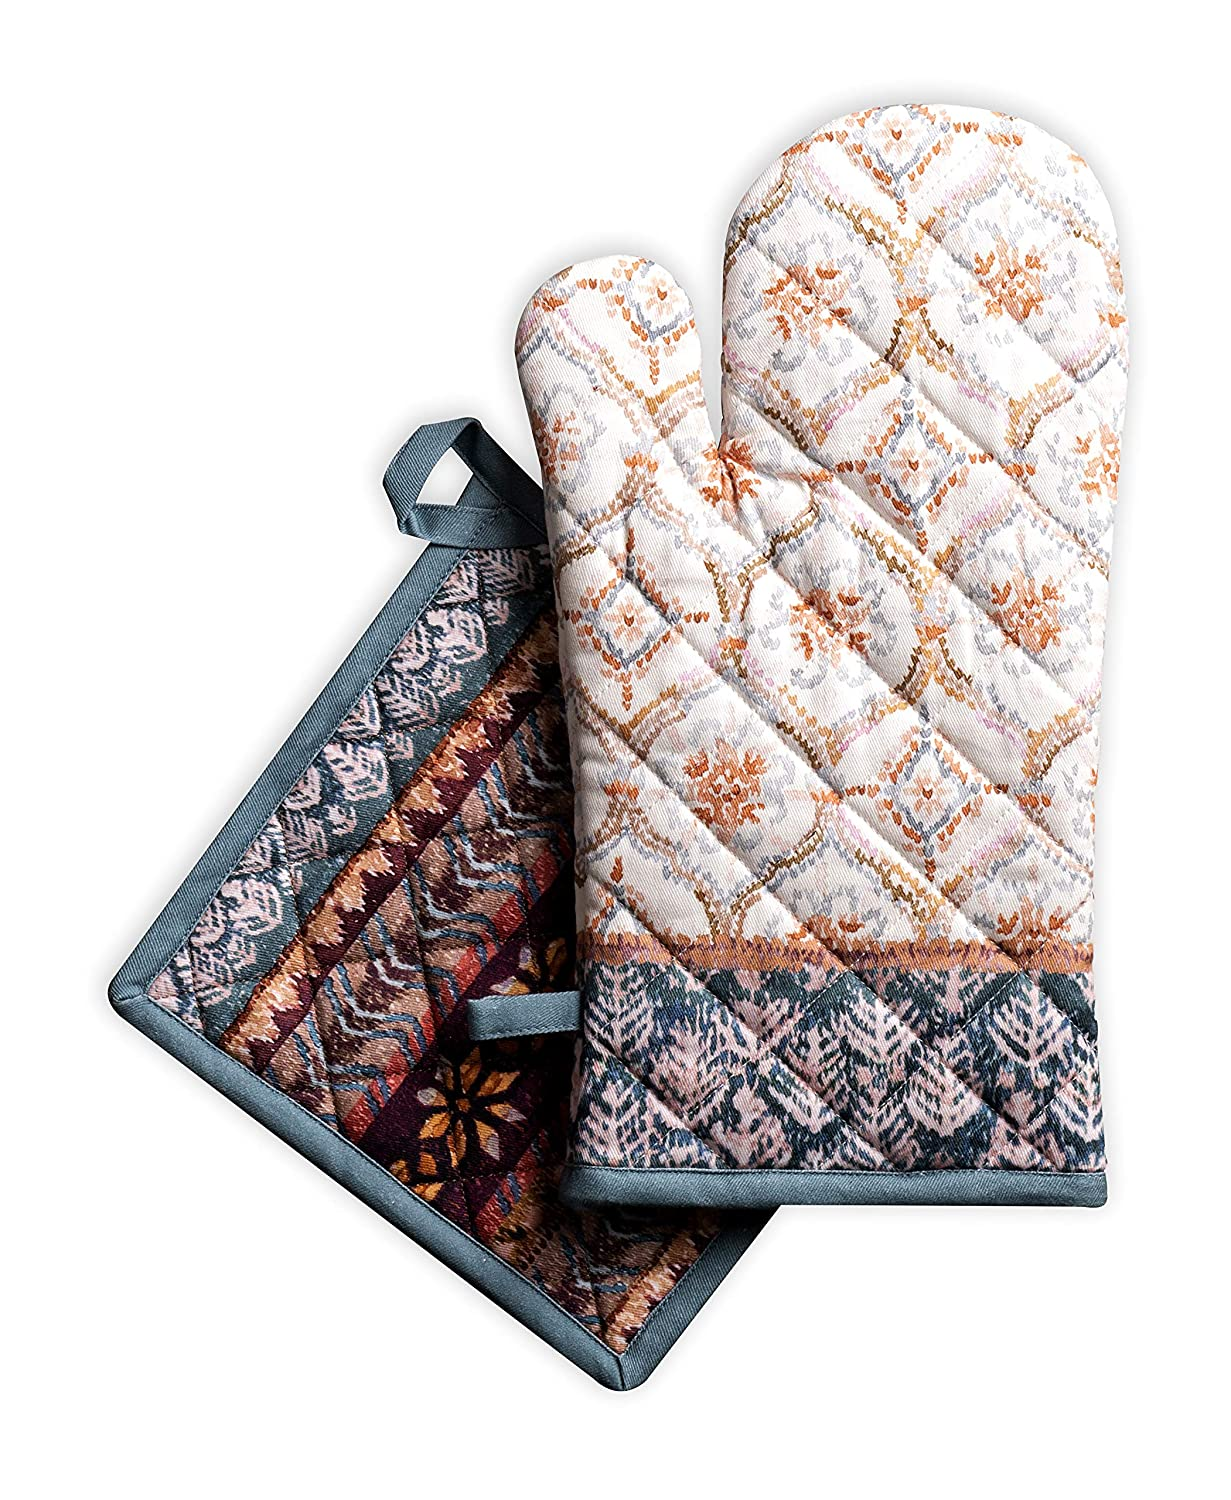 Maison d' Hermine Fair Isle 100% Cotton Set of Oven Mitt (7.5 Inch by 13 Inch) and Pot Holder (8 Inch by 8 Inch). Perfect for Thanksgiving and Christmas